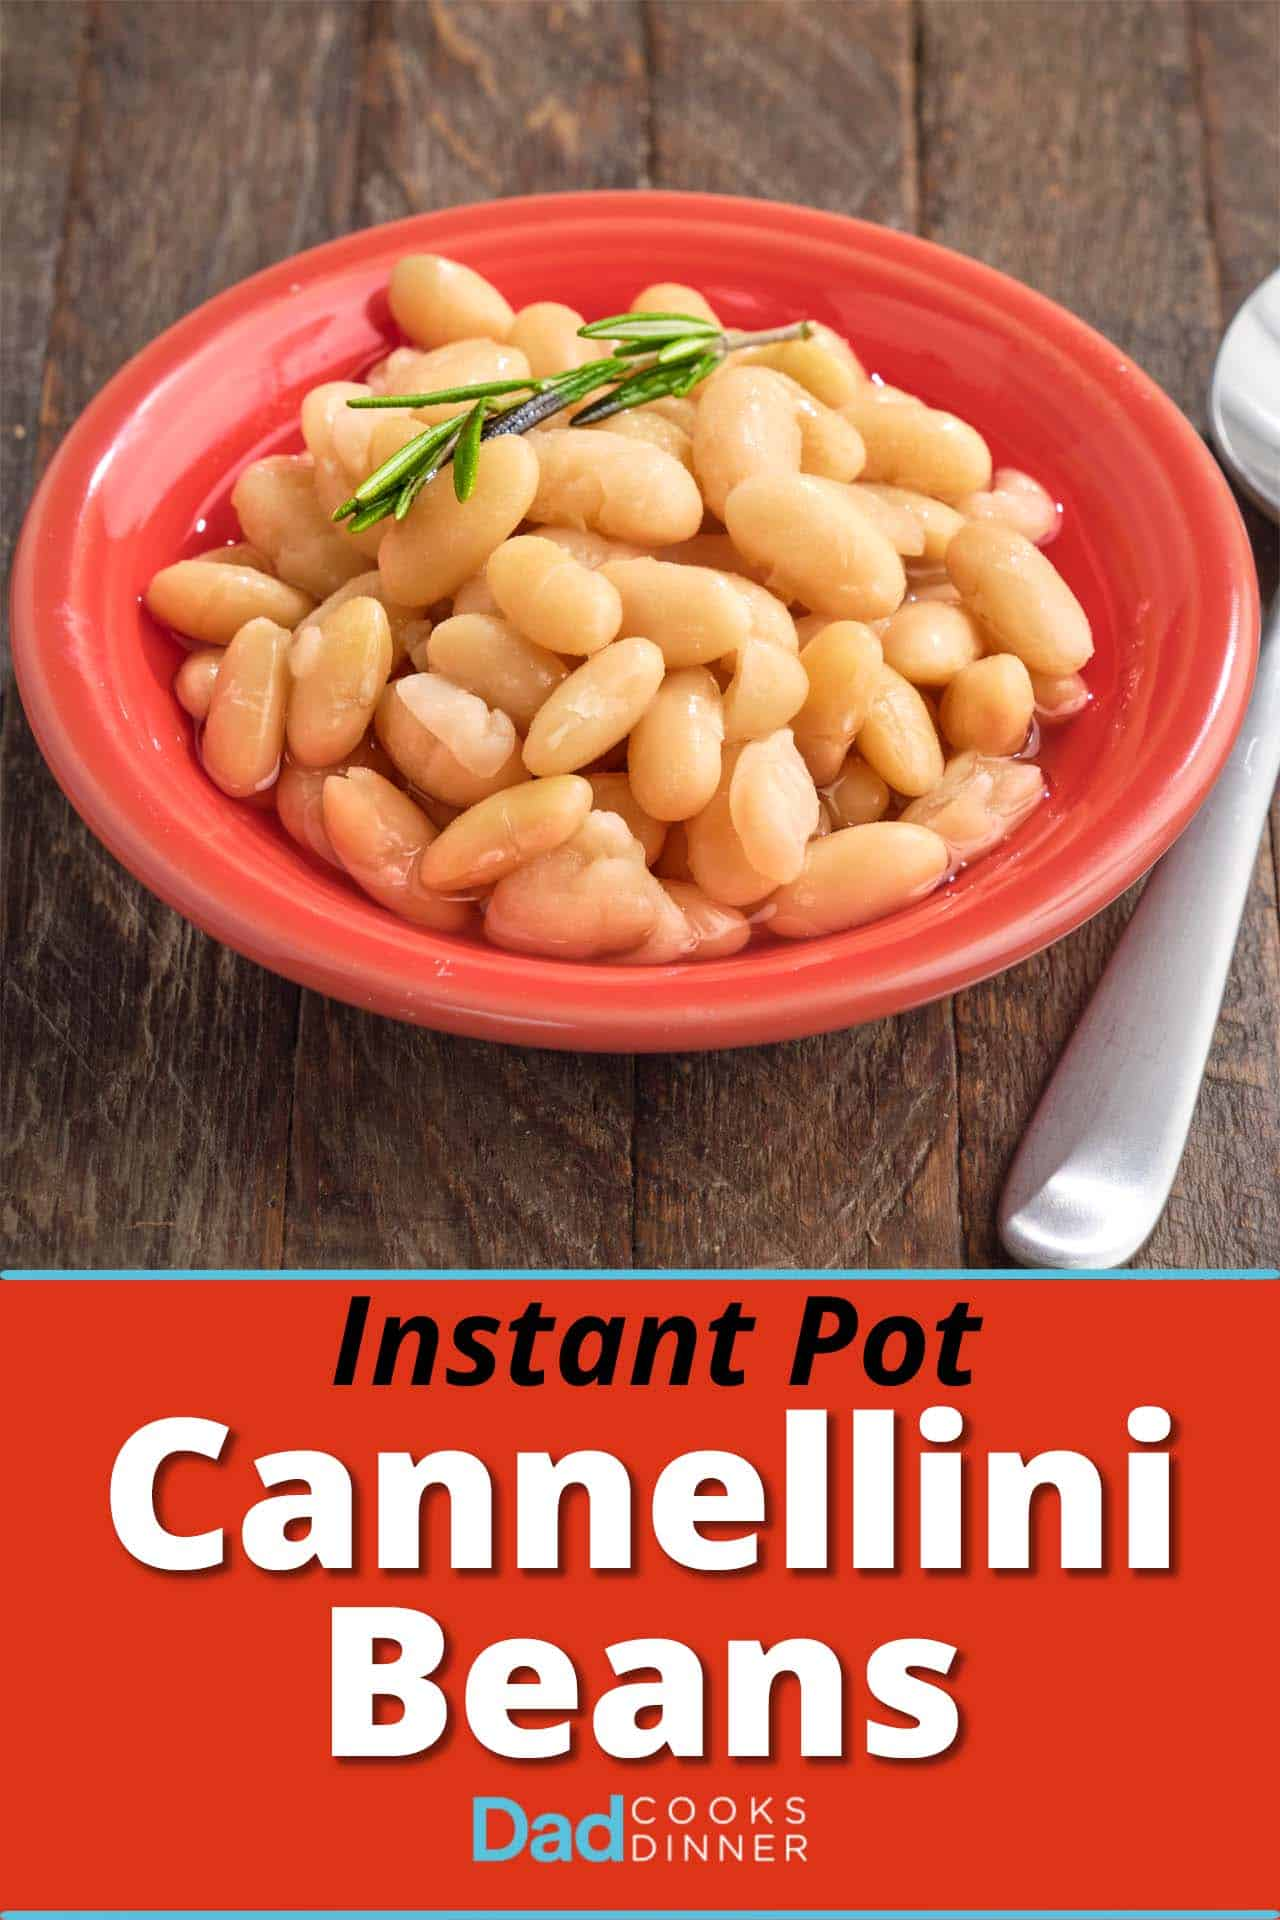 A bowl of cannellini beans with a sprig of rosemary on top and a spoon on the side